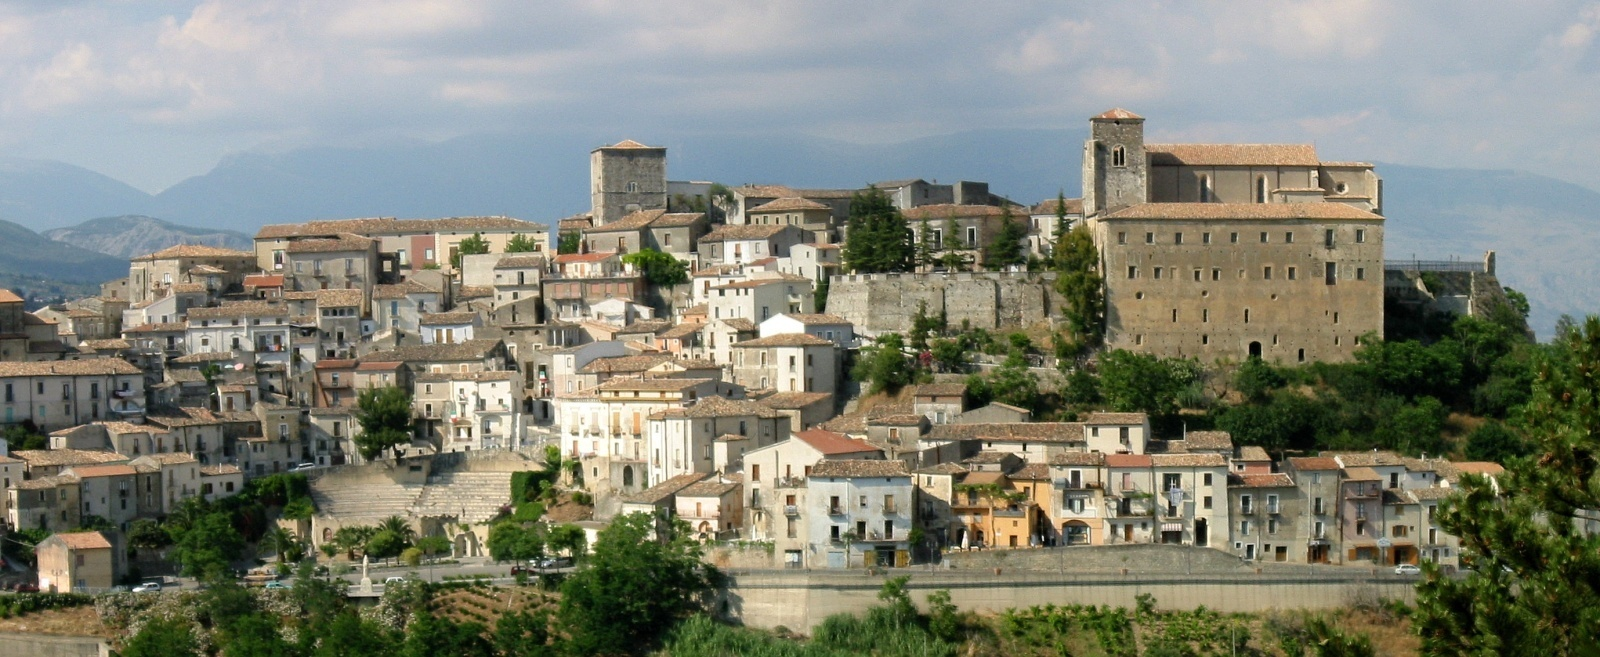 Altomonte - Tour - Visita guidata - Escursioni- Guide Turistiche Associate Calabria - Italy